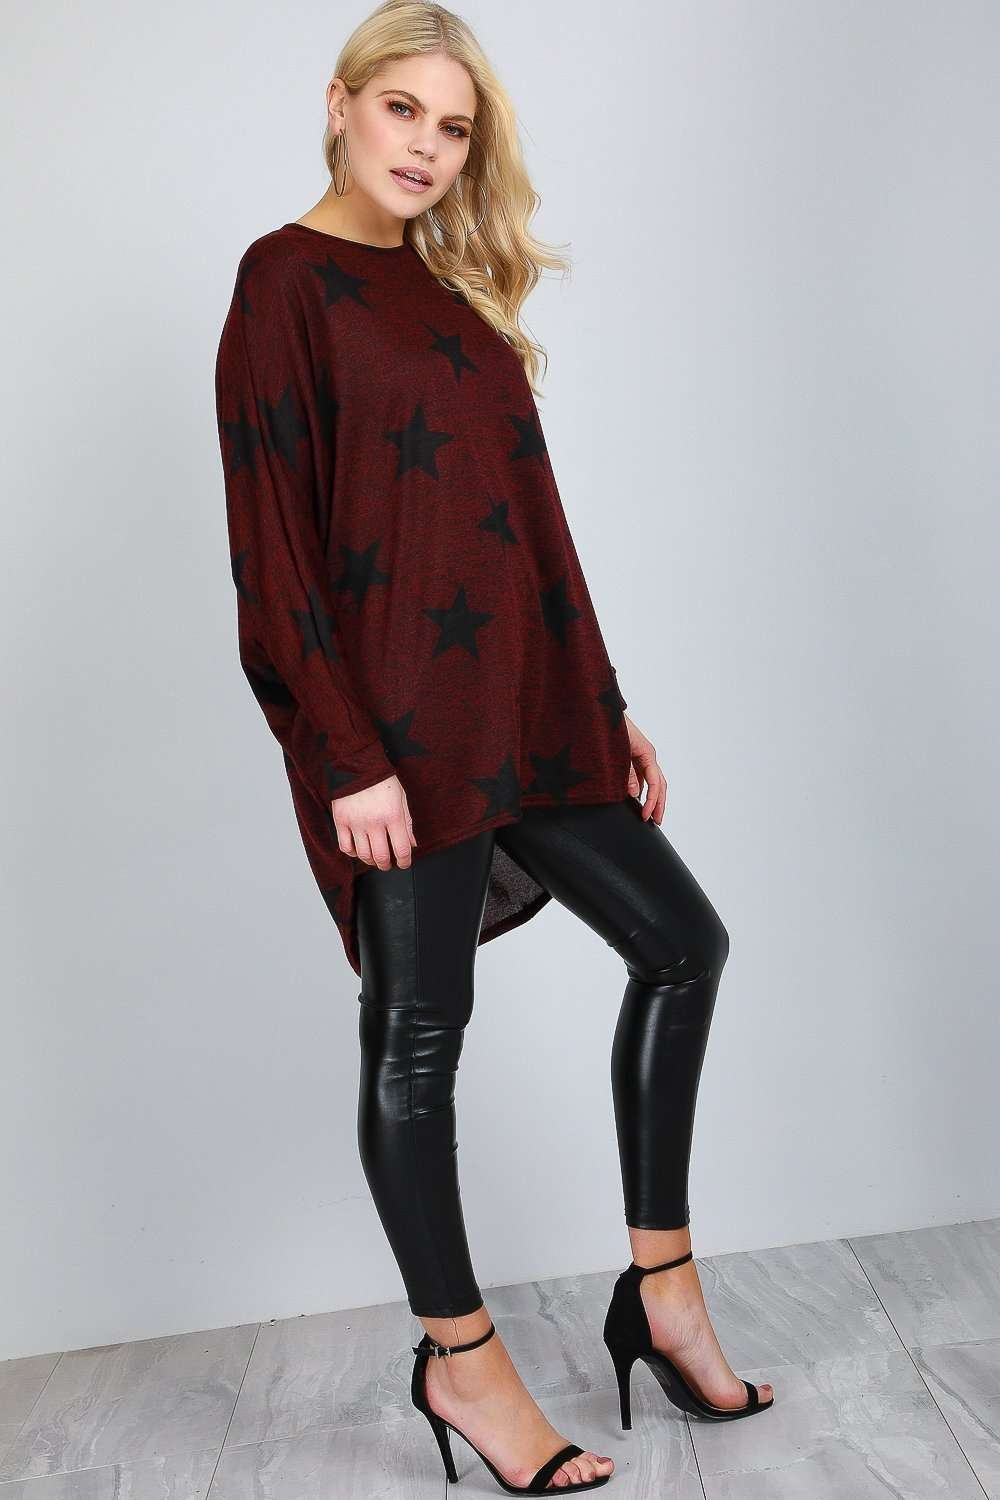 Star Print Dipped Hem Black Batwing Top - bejealous-com